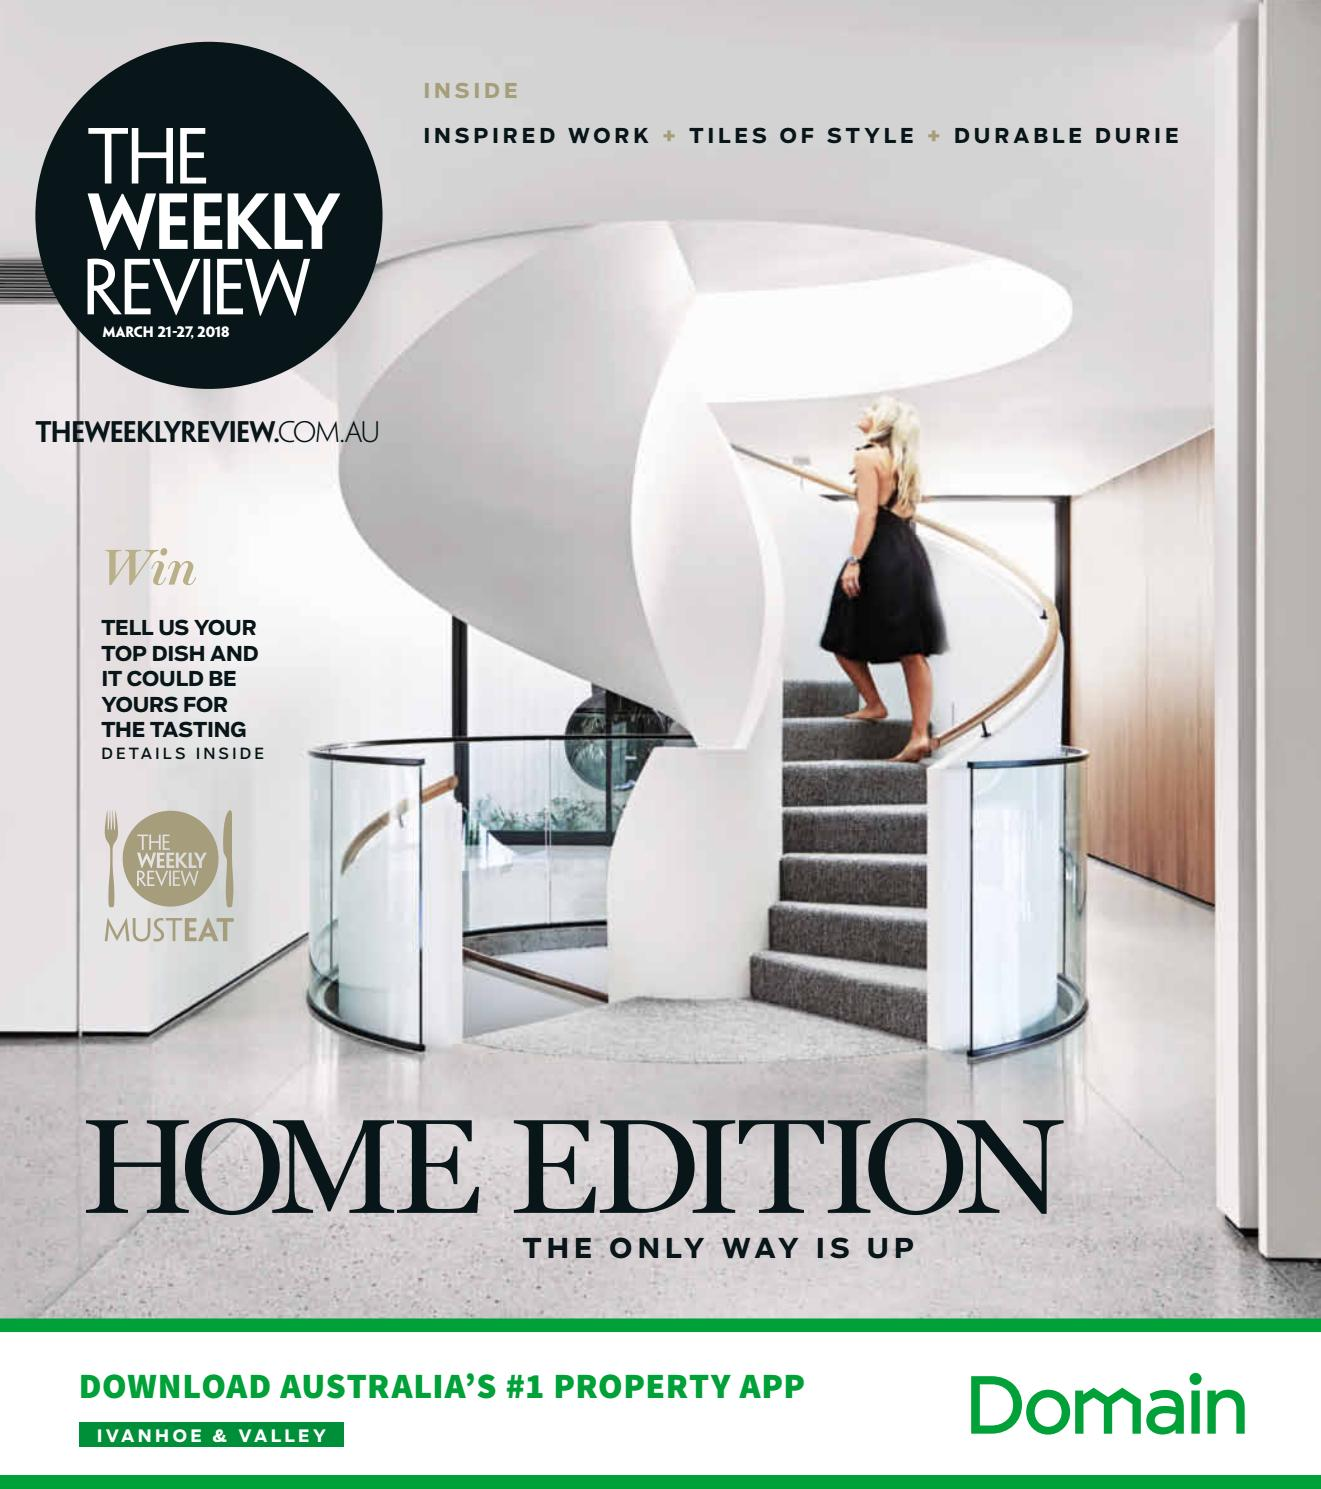 The Weekly Review Ivanhoe & Valley by The Weekly Review issuu